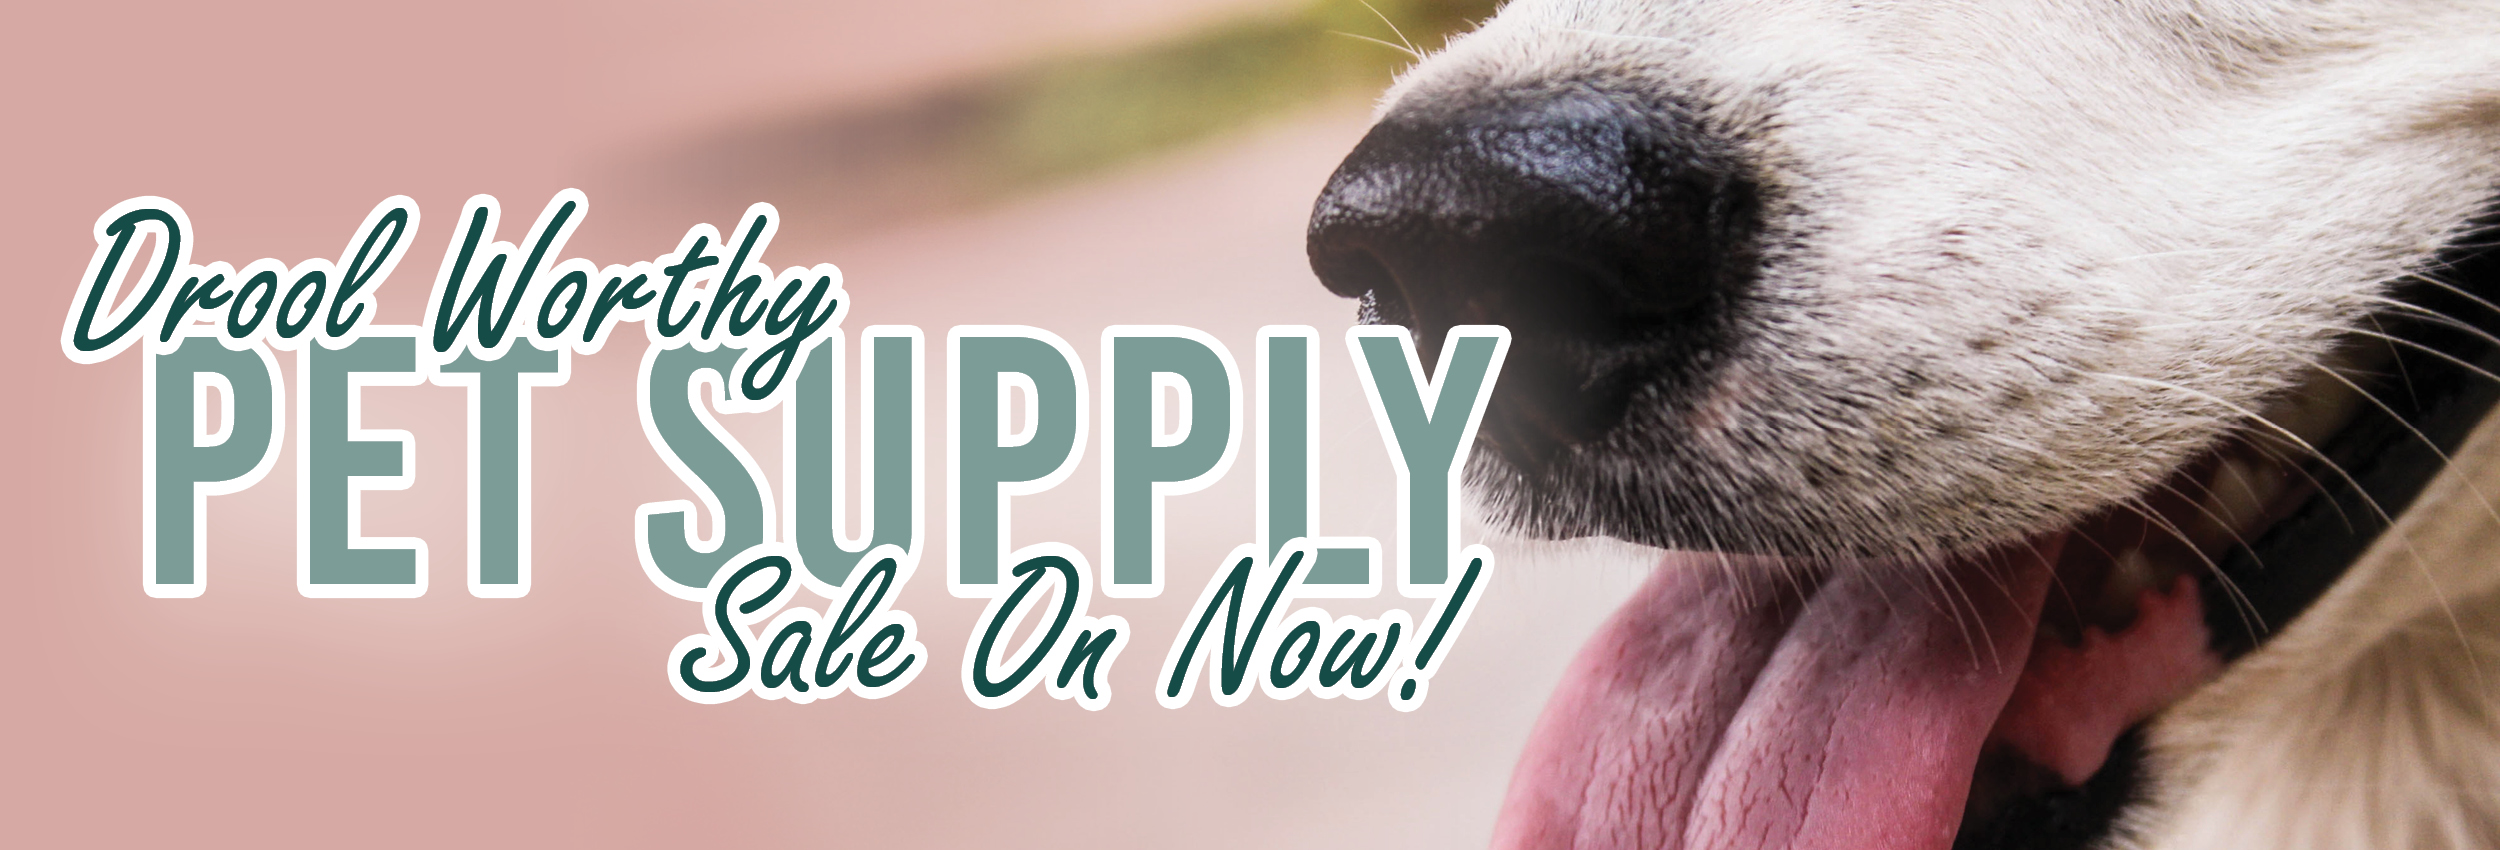 Drool Worthy Pet Supply Sale on Now at Alsip Home & Nursery